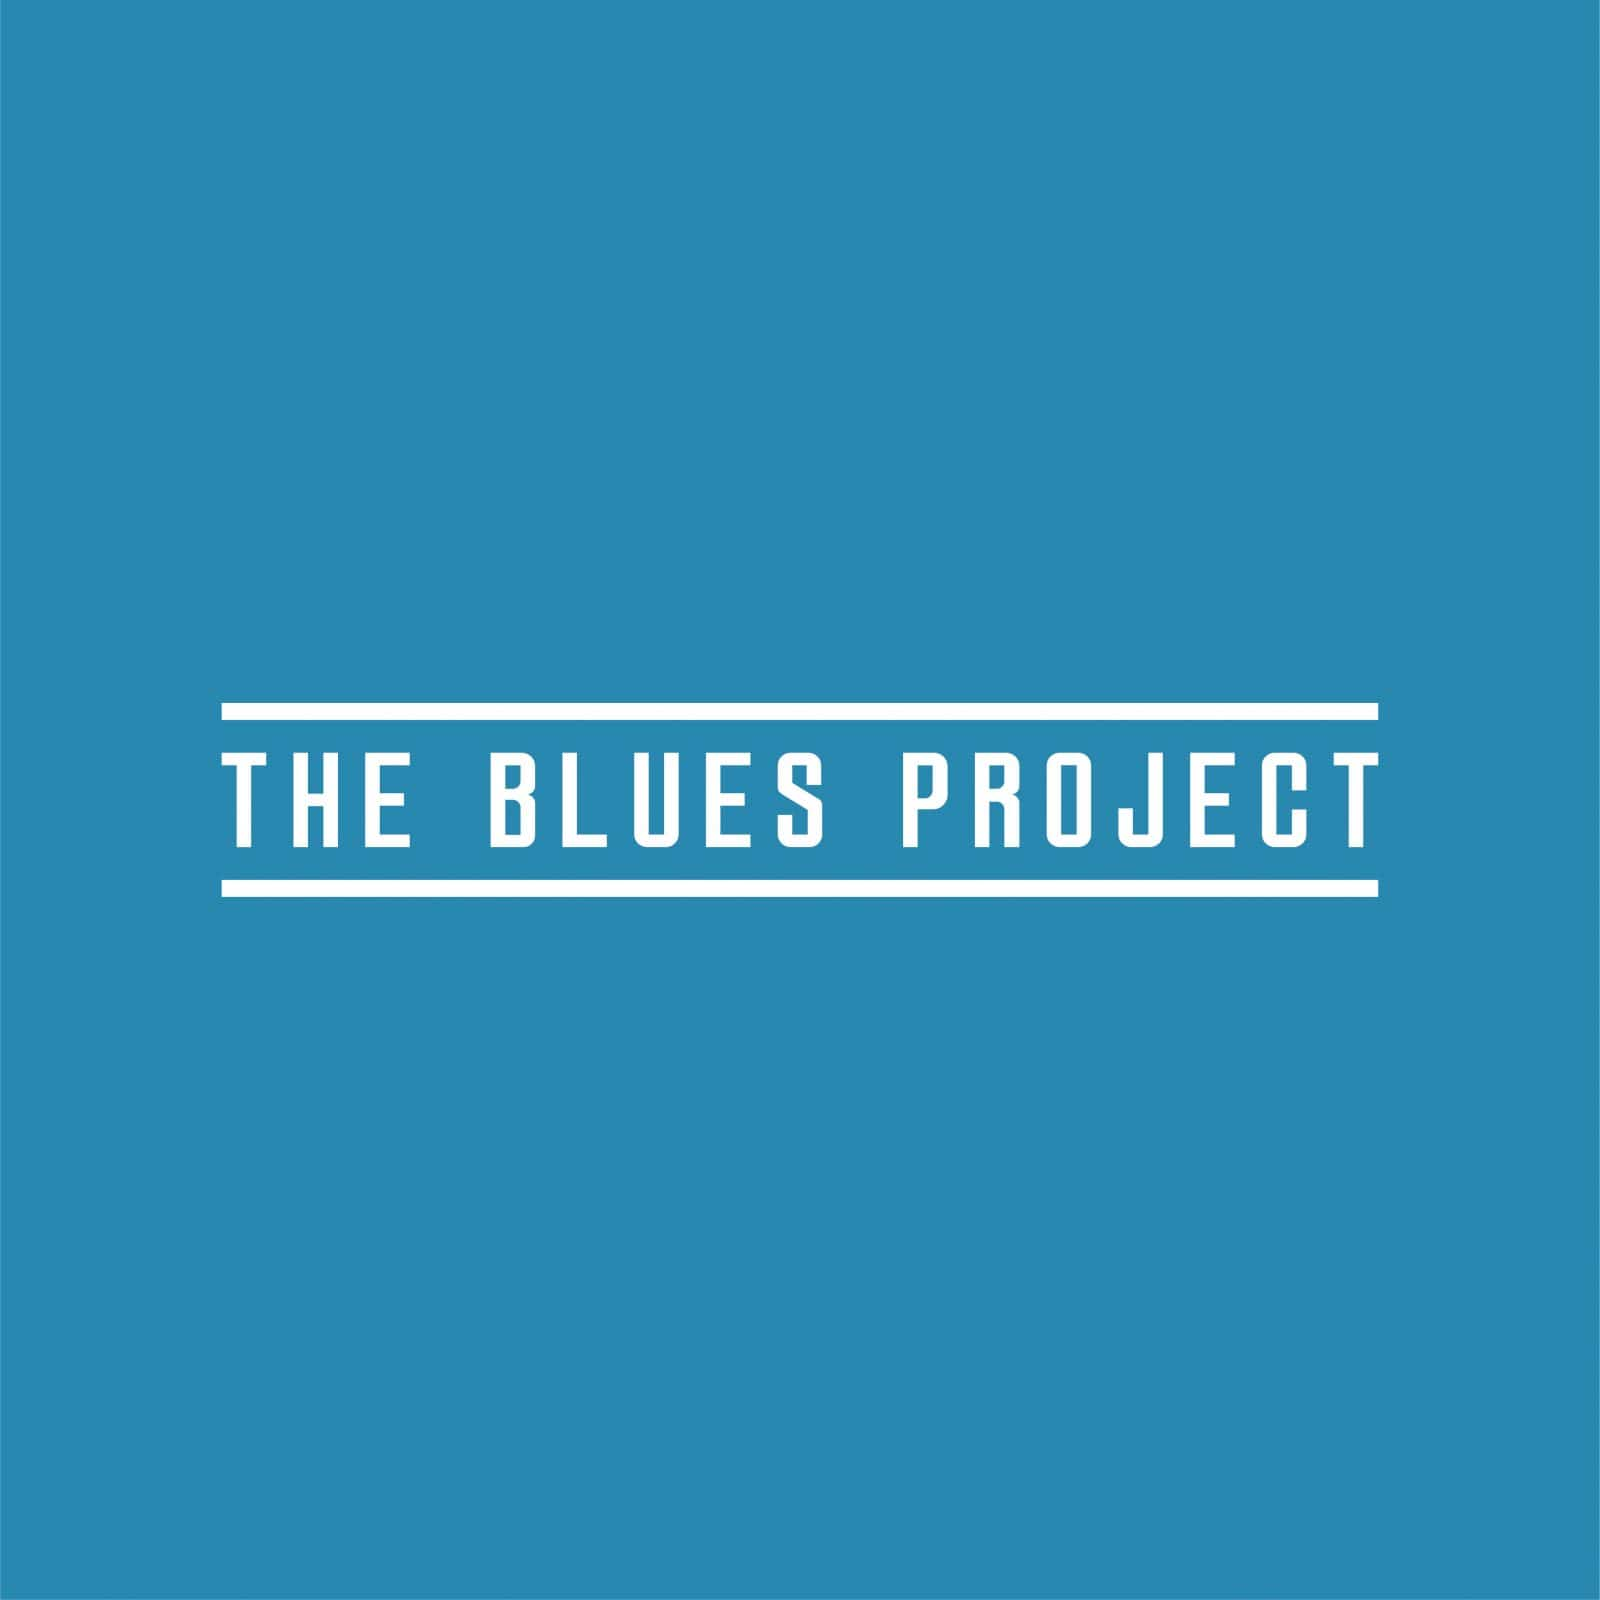 The Blues Project - Follow the renaissance of Soul music & R&B